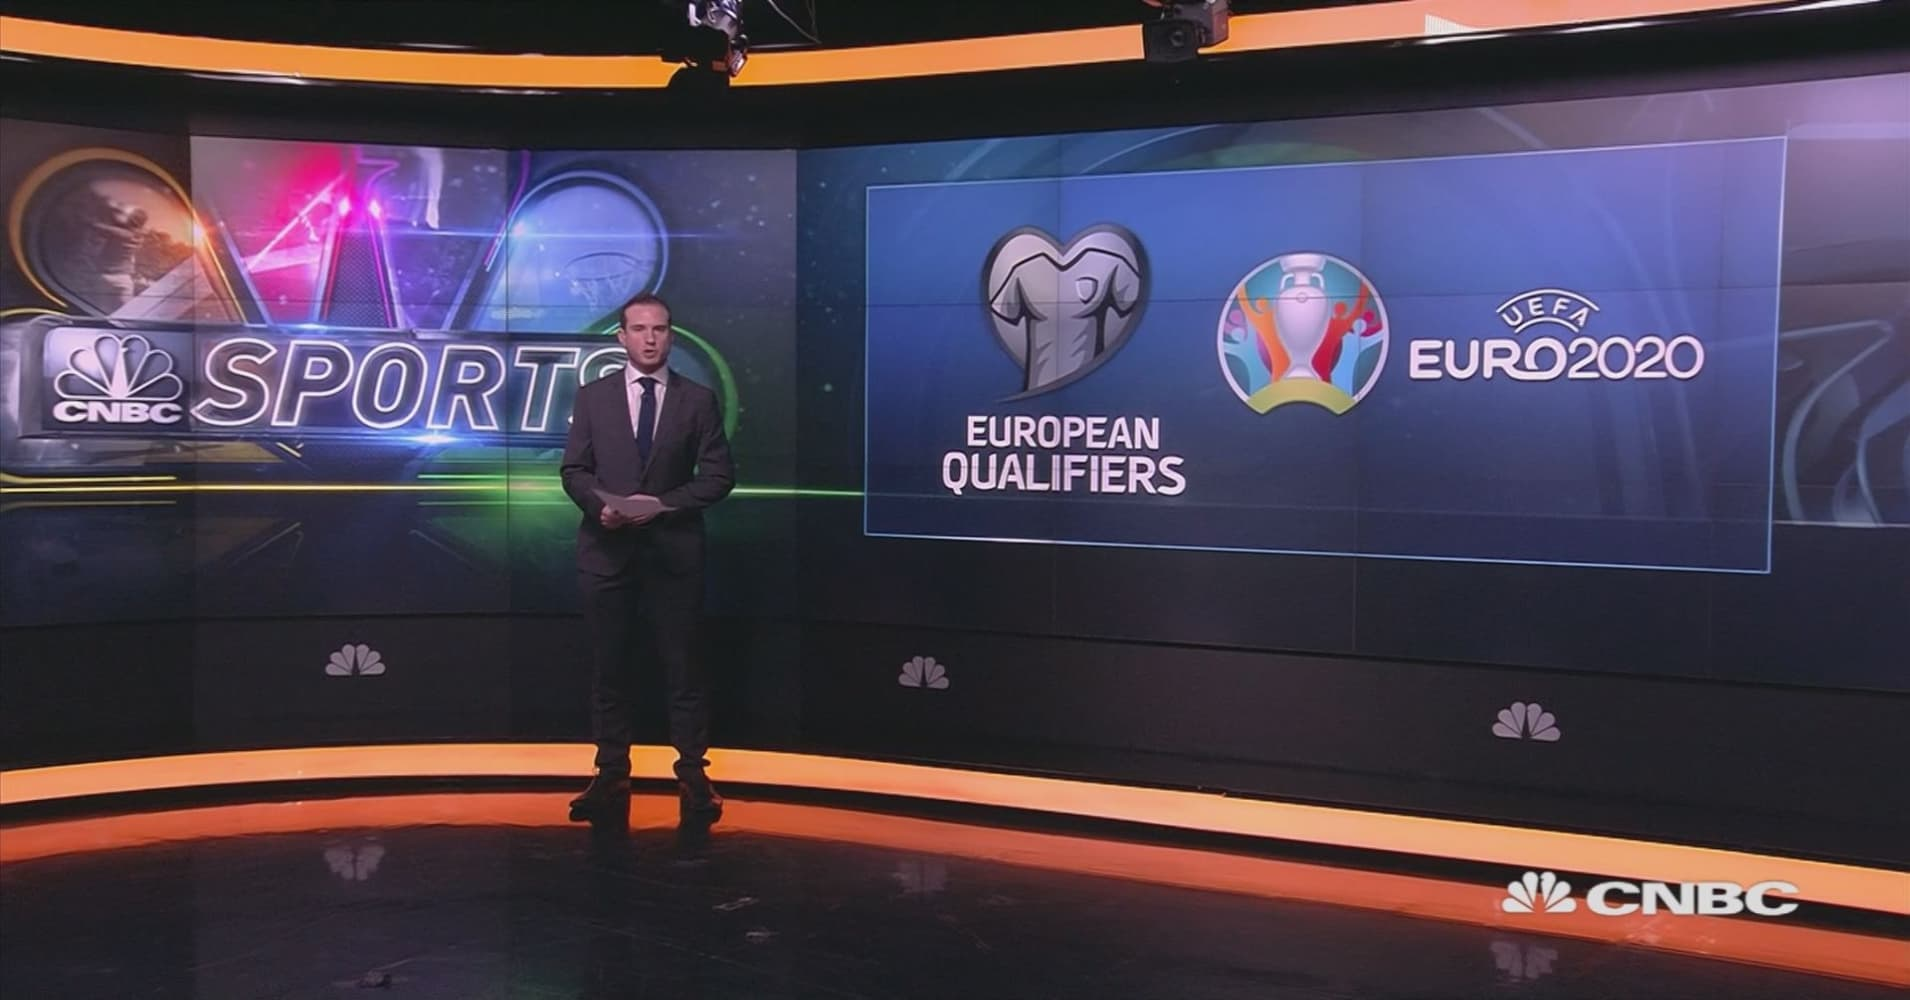 Best Place To Exchange Dollars For Euros 2020 Opening UEFA Euro 2020 qualifying matches kick off